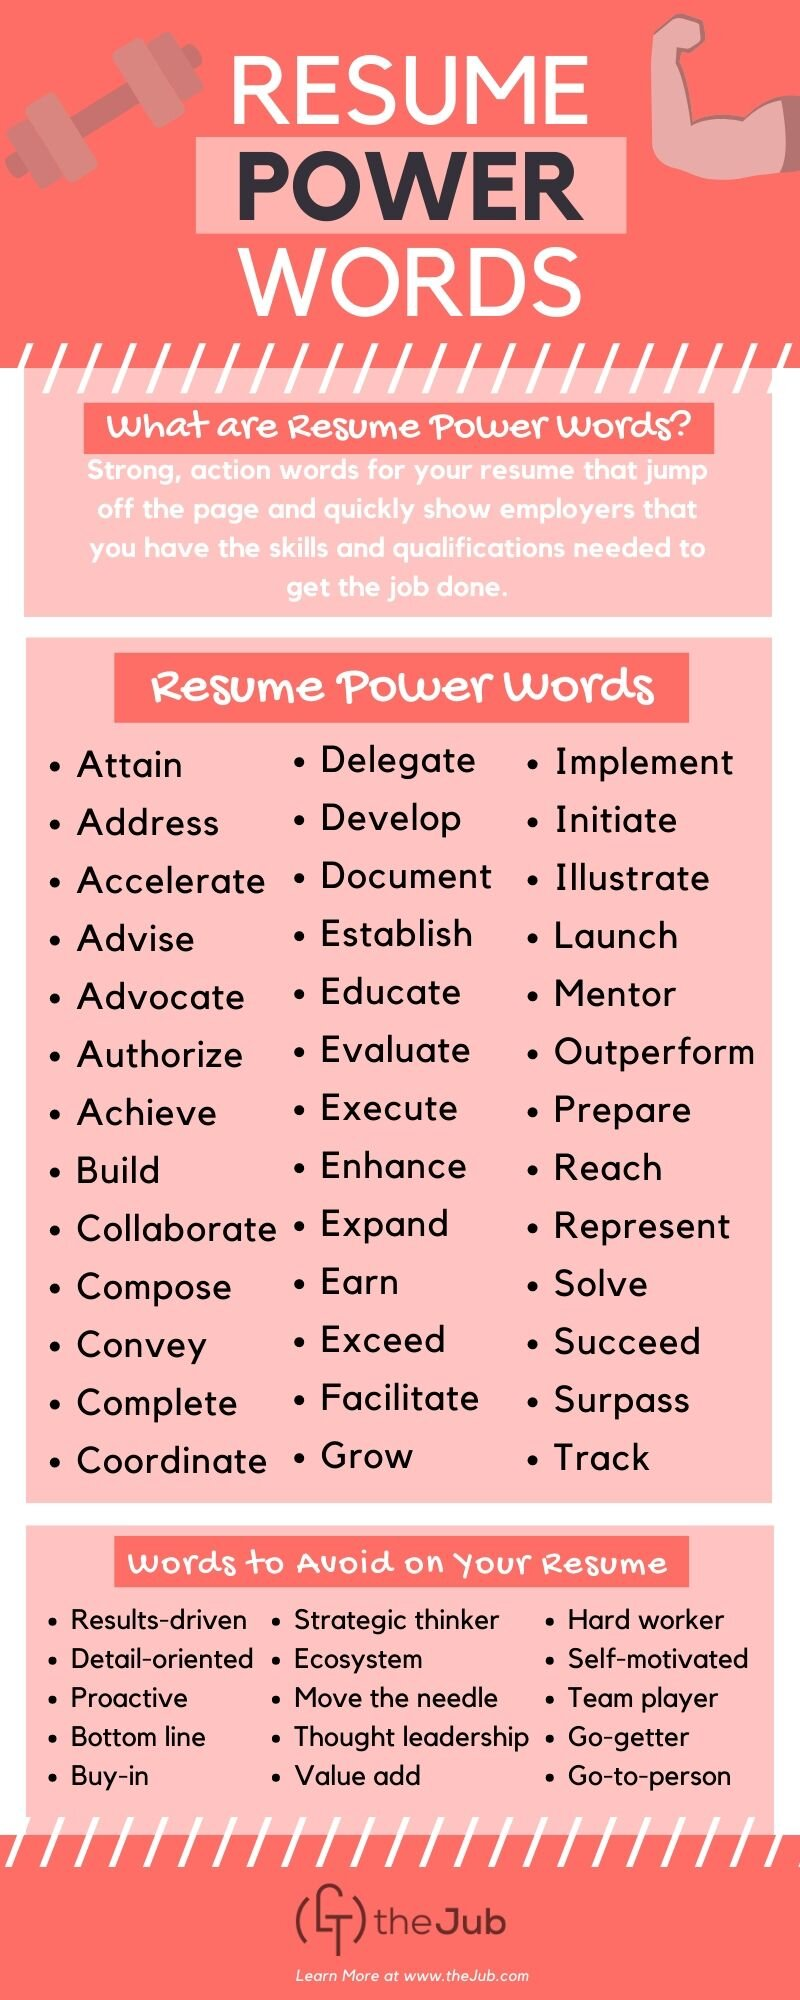 resume words for infographic good action five star closing statement analytics profile Resume Good Action Words For Resume